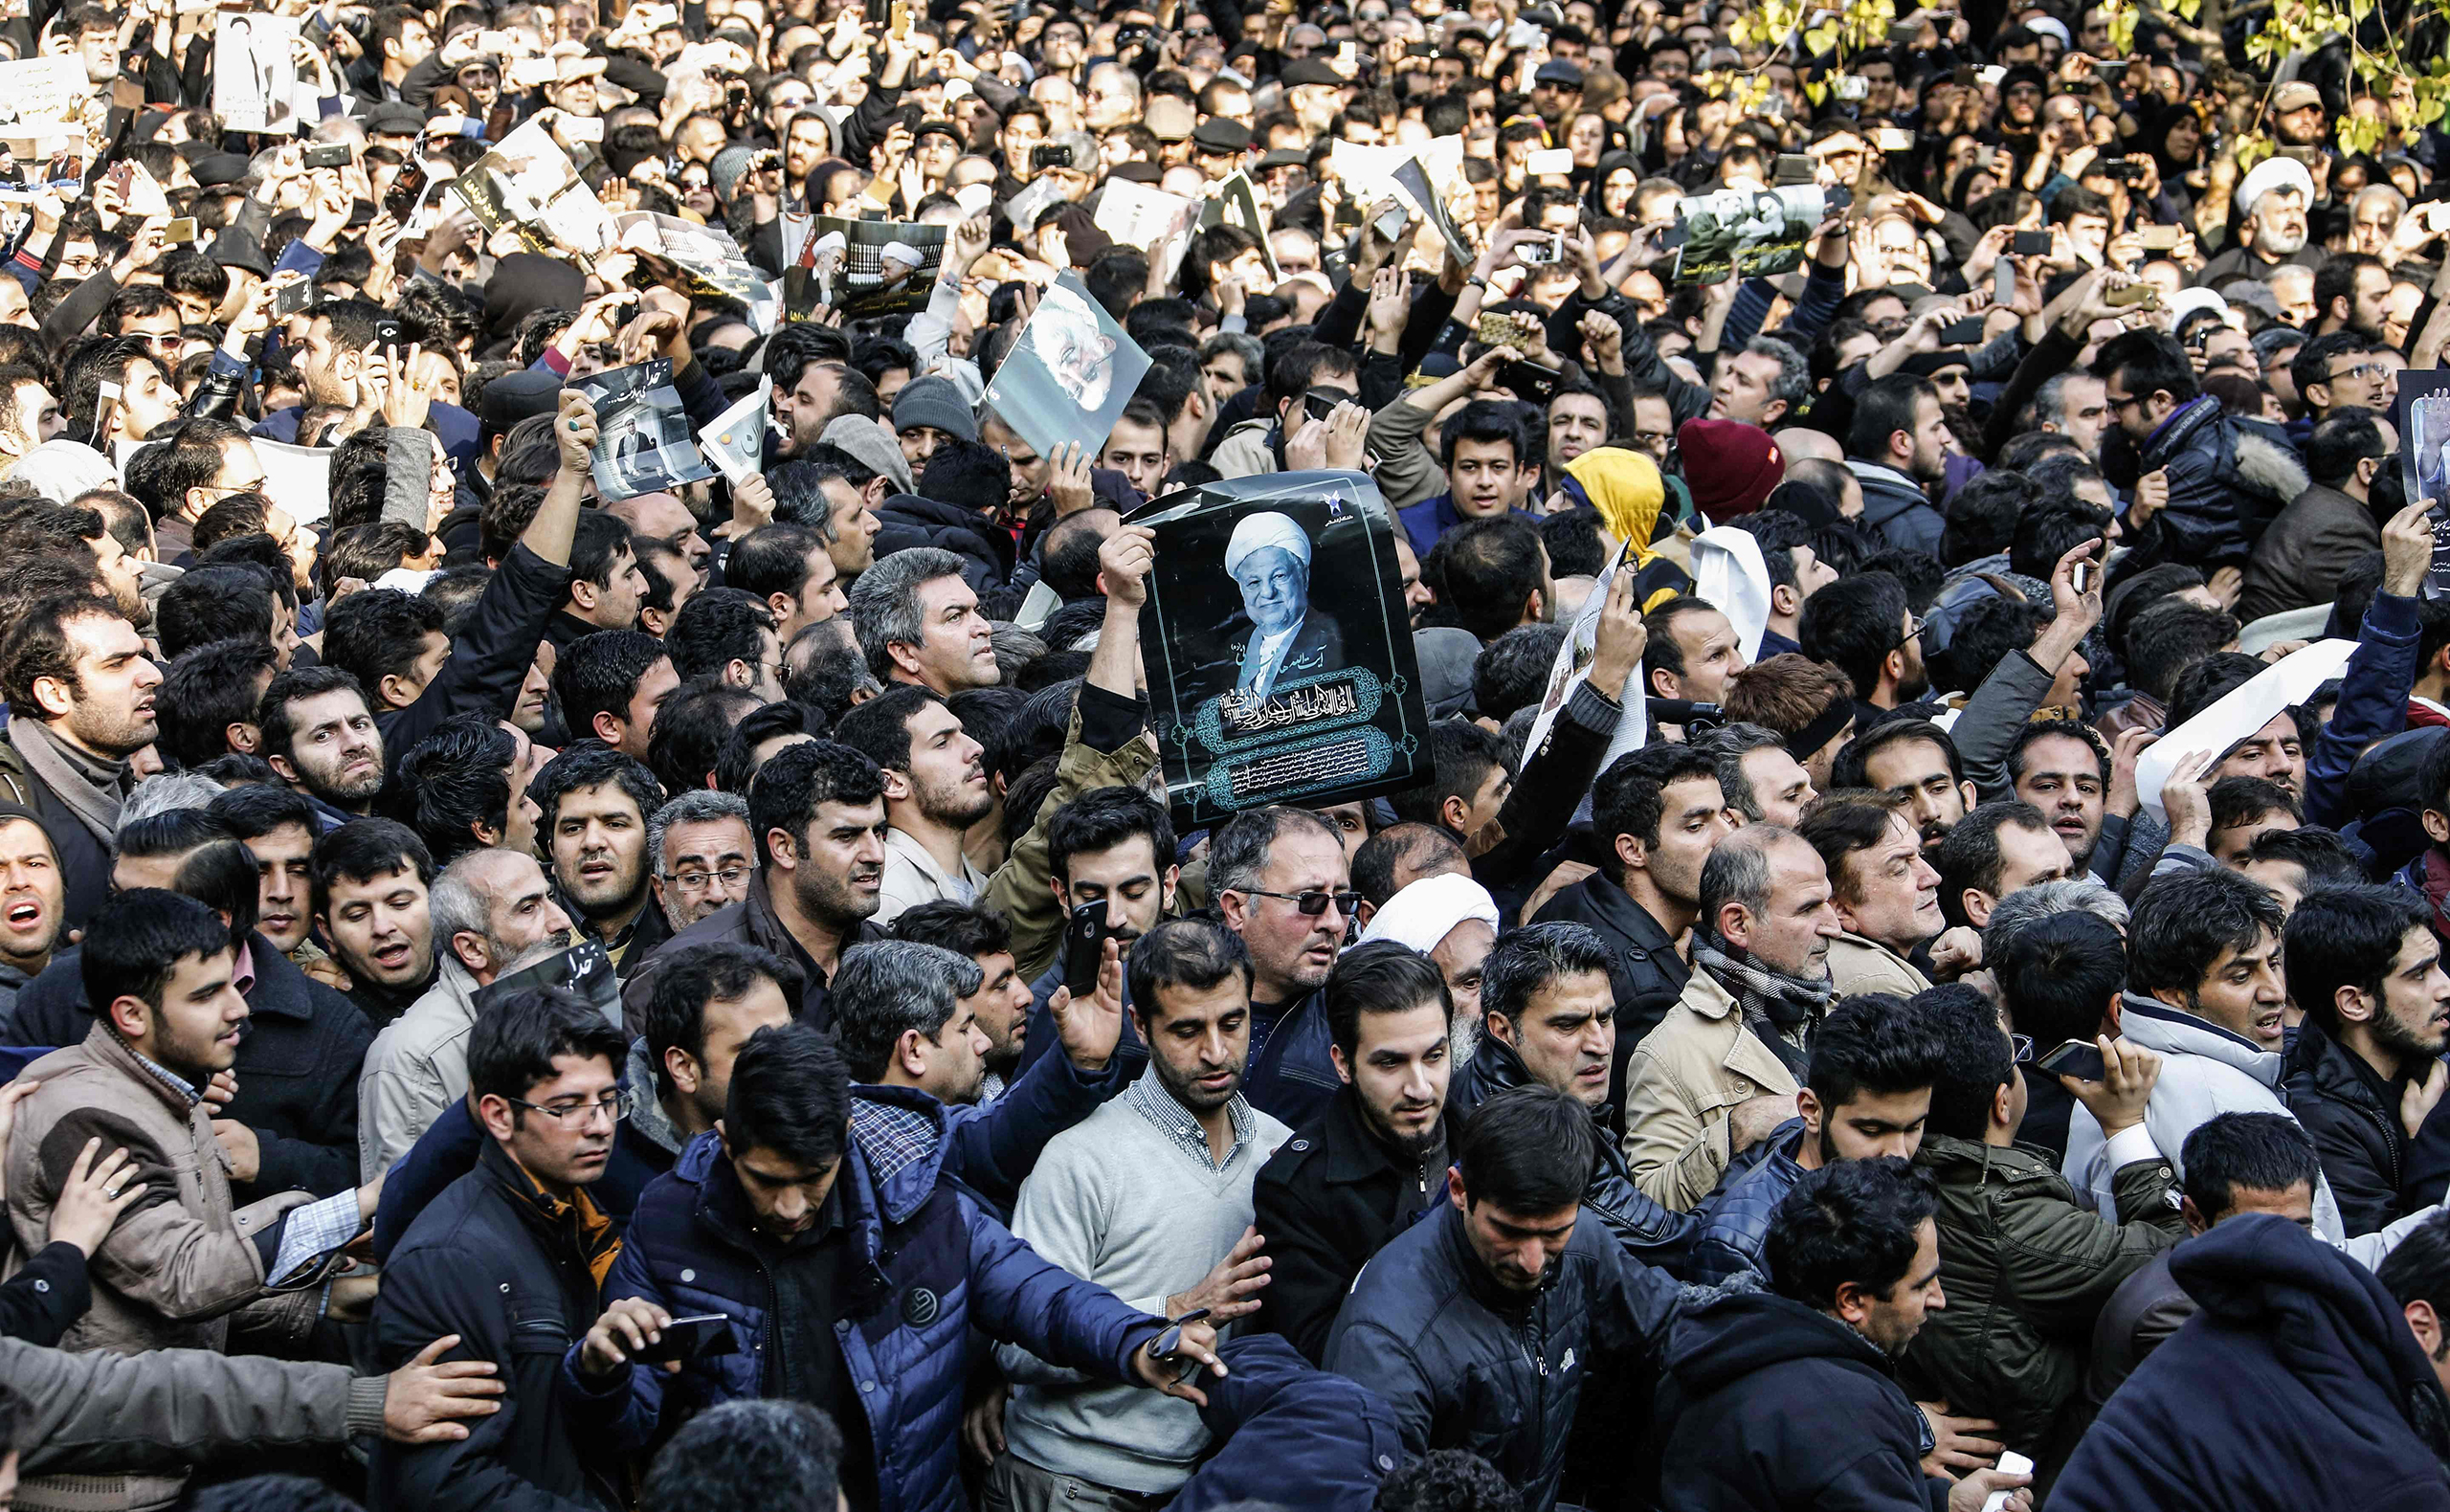 Iranians gather around a hearse carrying the coffin of former President Akbar Hashemi Rafsanjani during his funeral ceremony in Tehran on Jan. 10, 2017.                   The heavyweight politician will be buried inside the crypt of Ayatollah Ruhollah Khomeini, the leader of Iran's 1979 Islamic revolution, at Khomeini's mausoleum.